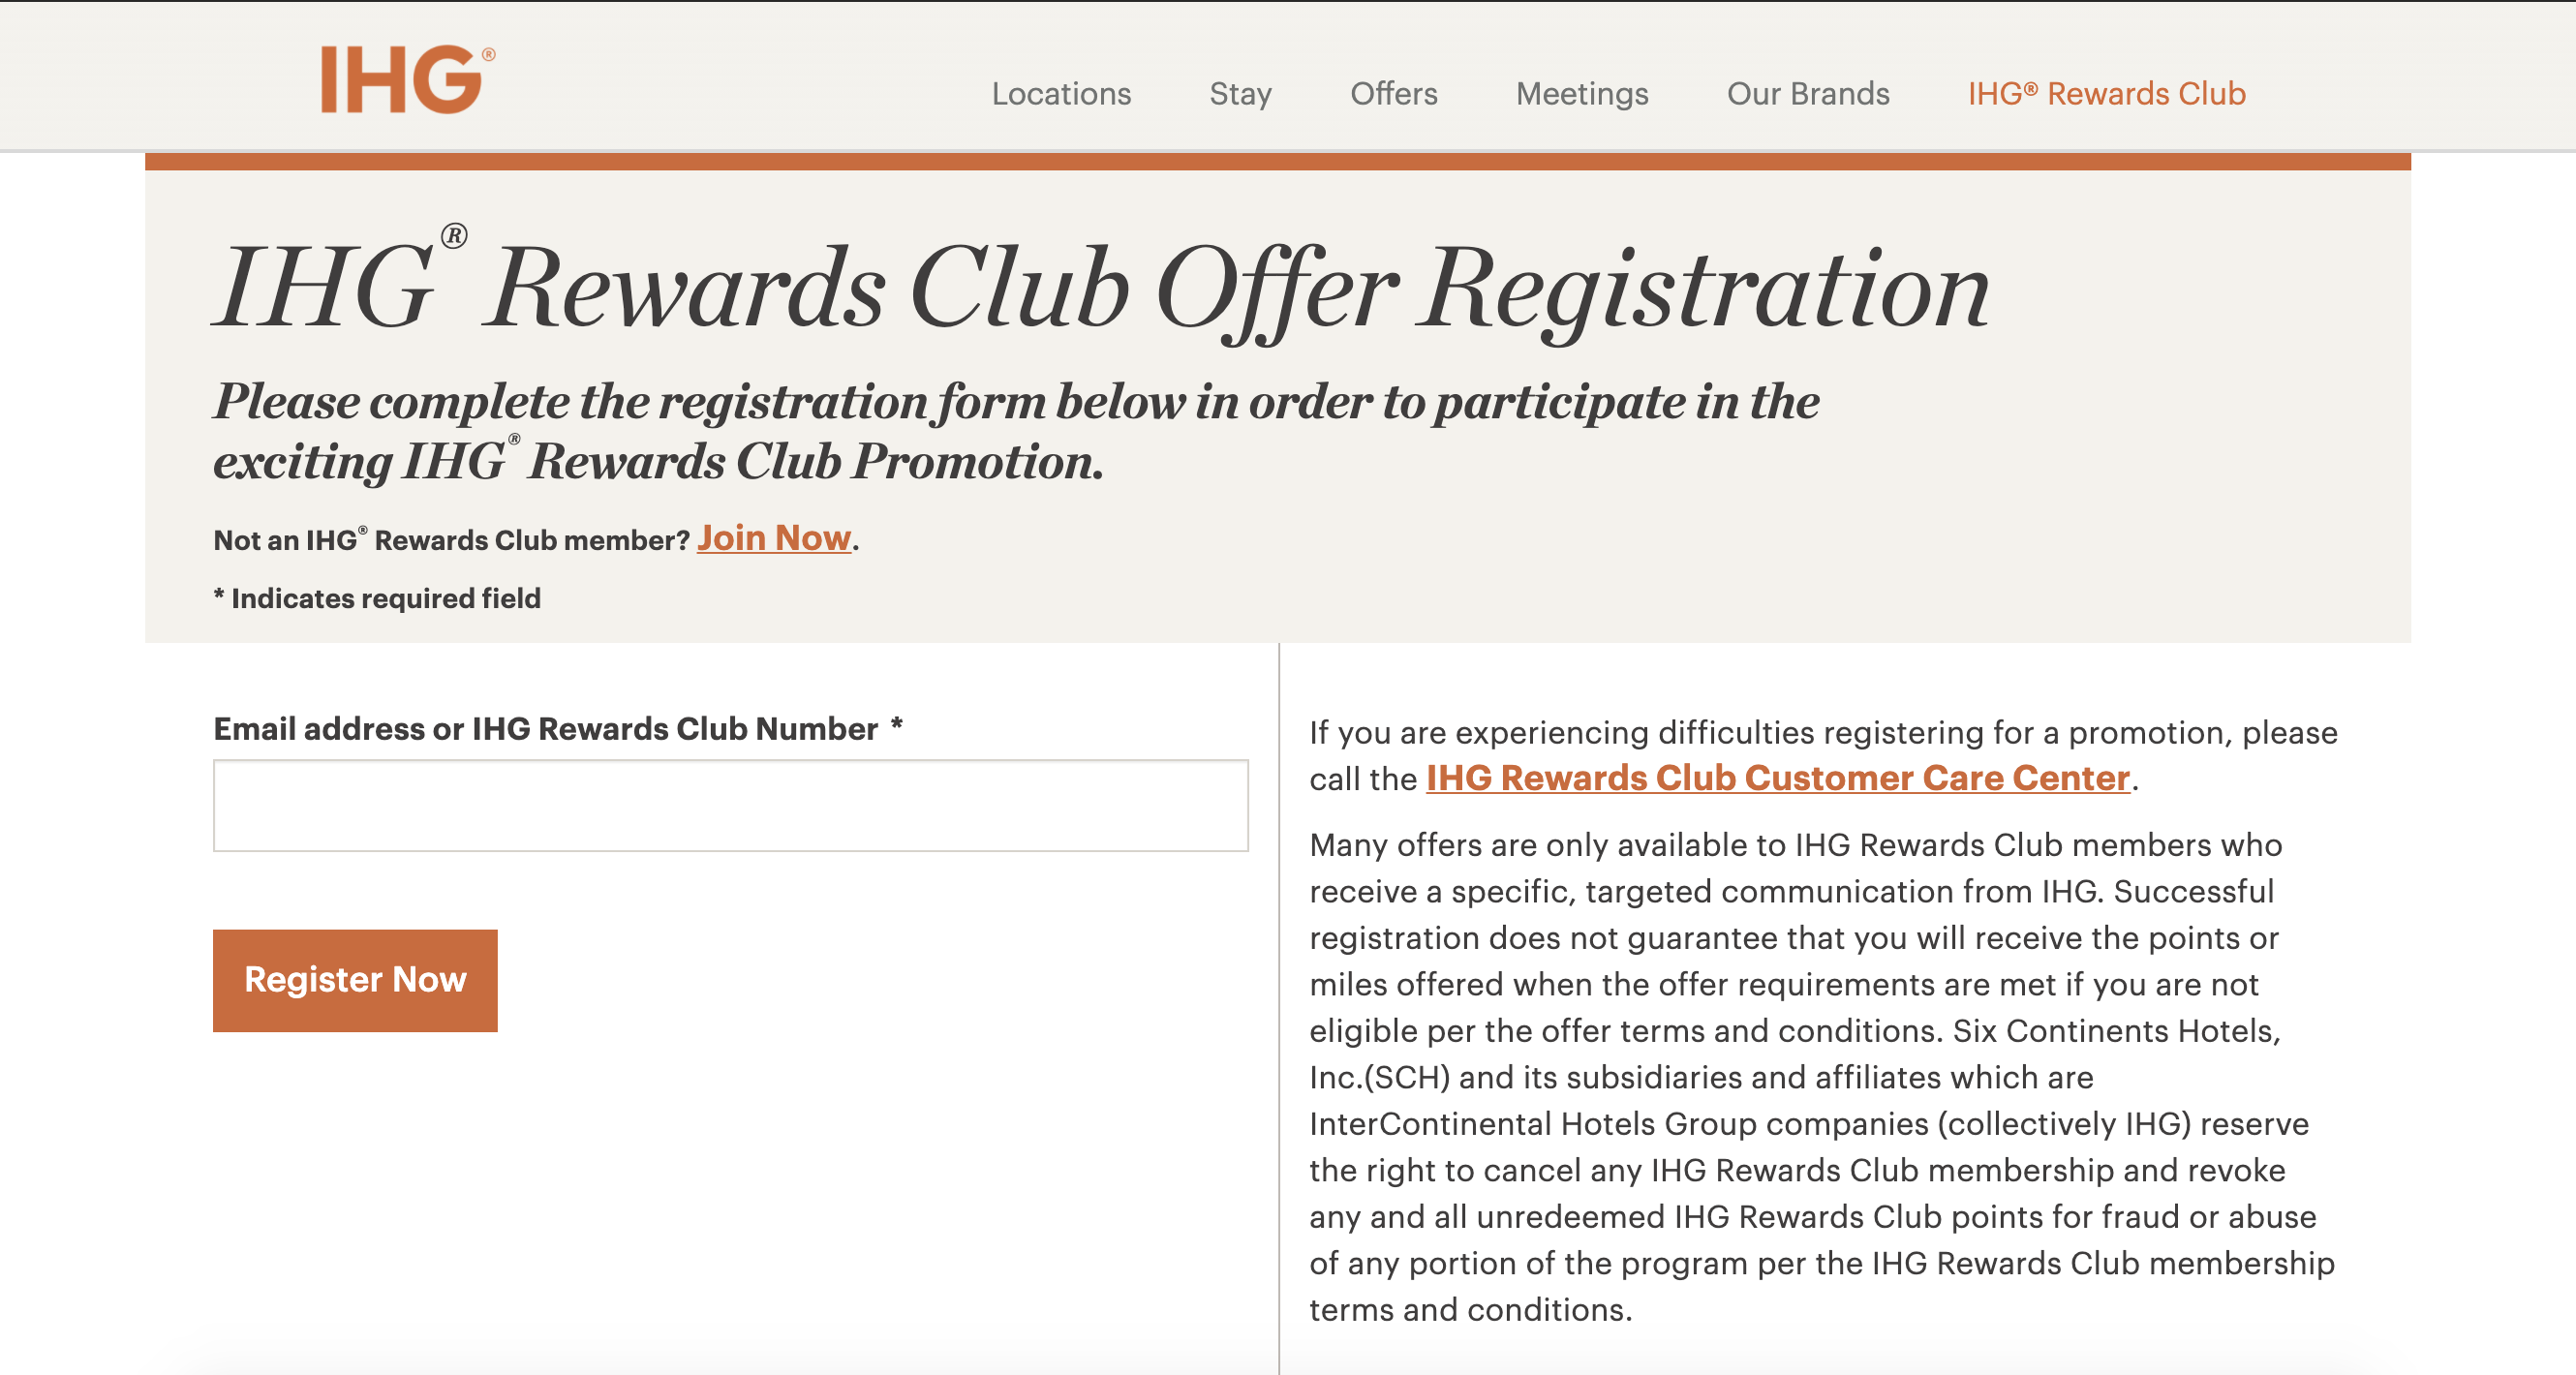 register for IHG rewards offers